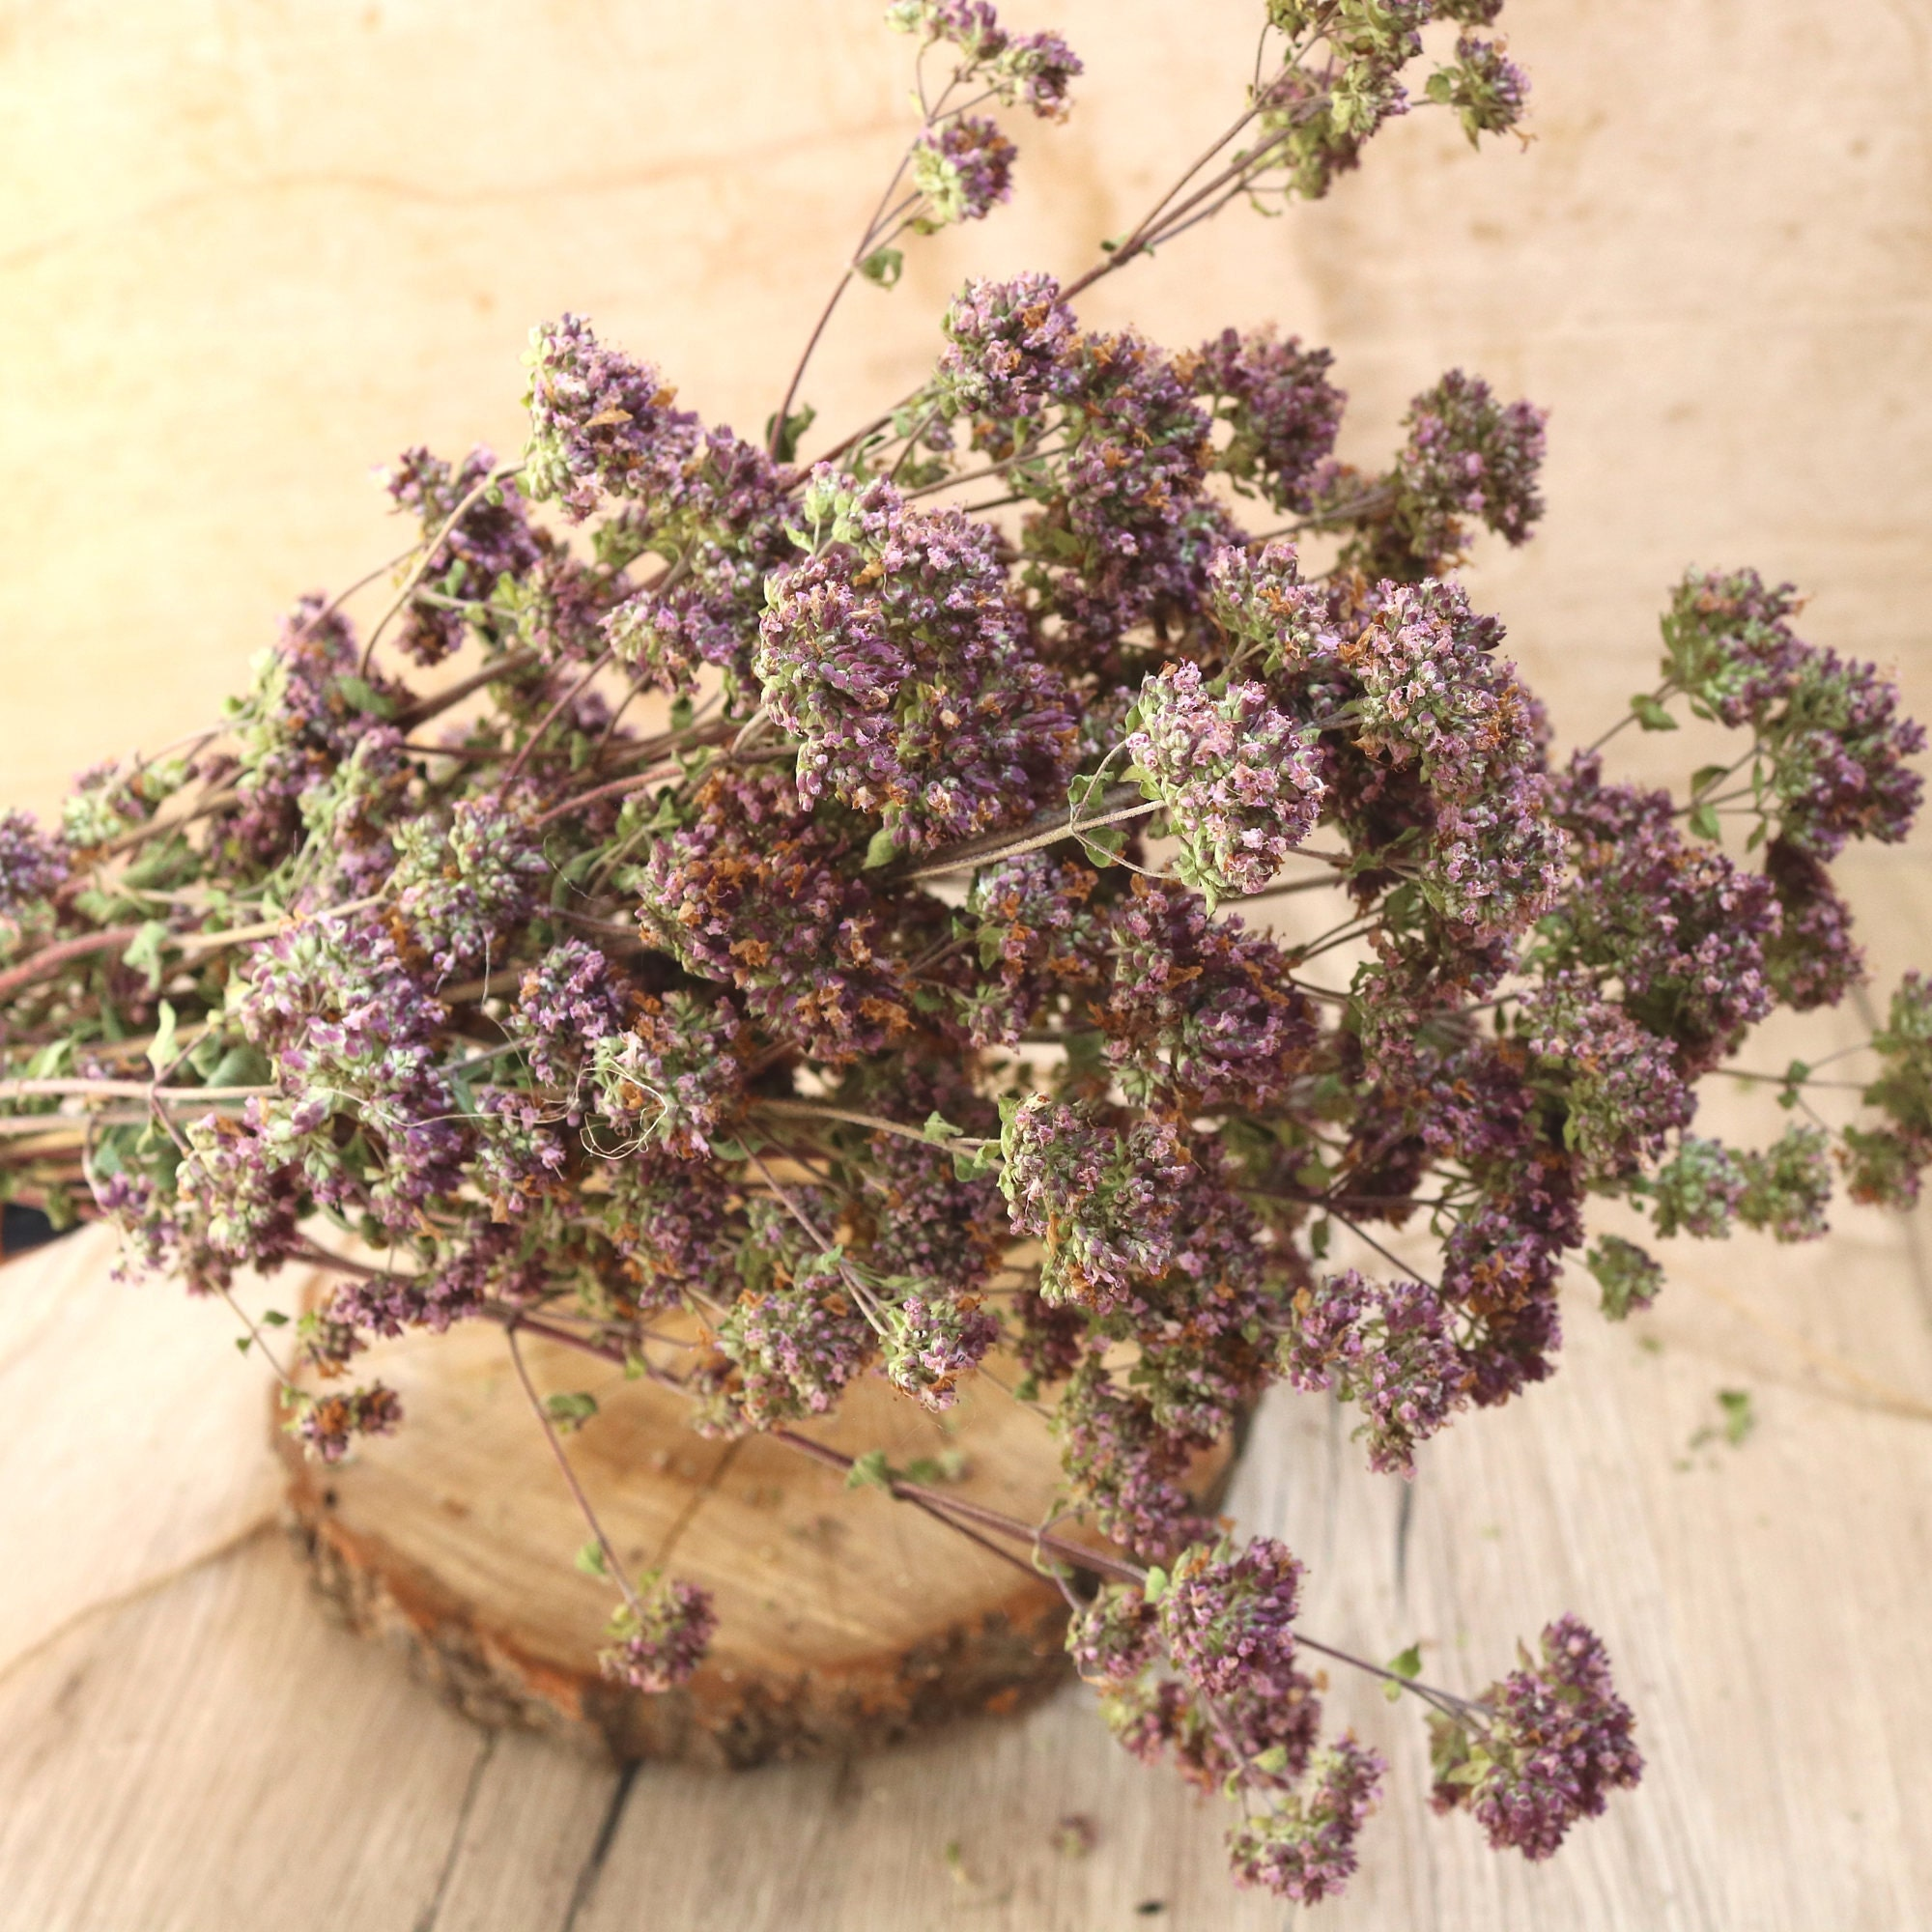 Dried oregano dried flowers wild flowes wildflowers dried sold by collectinspiration izmirmasajfo Images